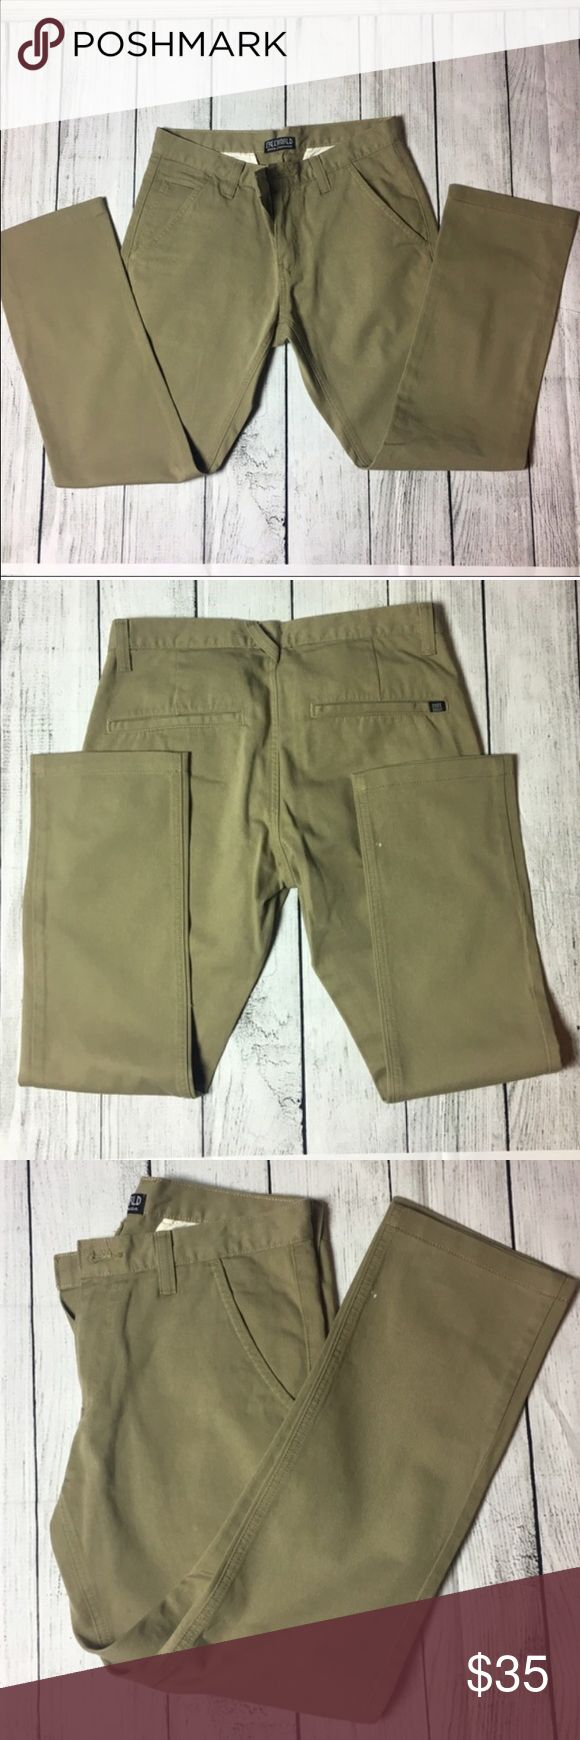 """🆕WOT👨🏻 Men's khaki pants The pert pair of khaki jeans. Made out of 100% cotton materials. They are NWOT. Has 5 usable pockets. MEASUREMENTS: waist 32""""- length 38"""" - inseam 28.5"""" FREEWORLD Pants Chinos & Khakis"""